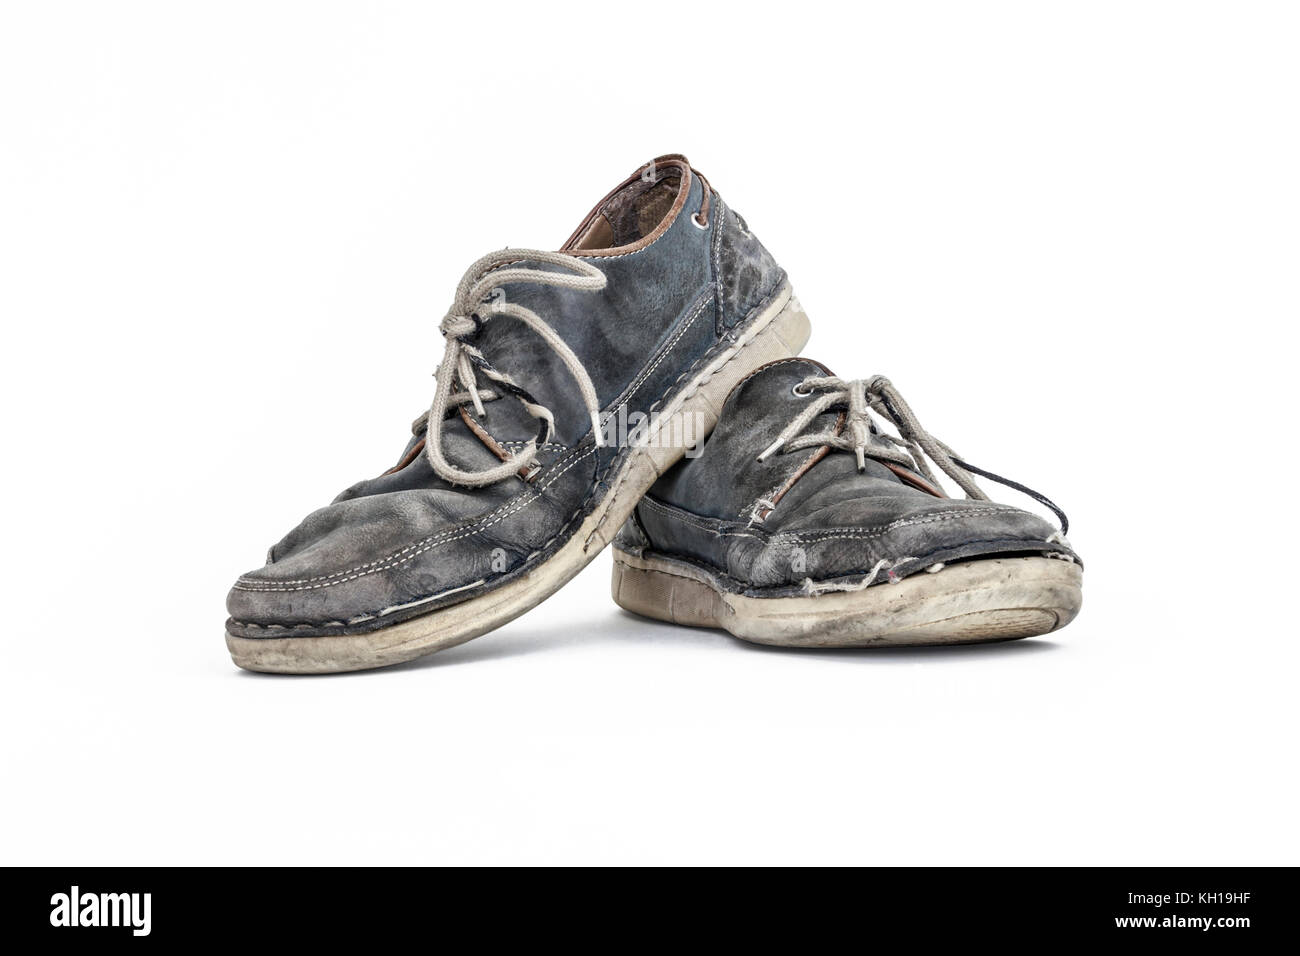 A pair of old worn-out grey leather lace-up shoes against a white background - Stock Image